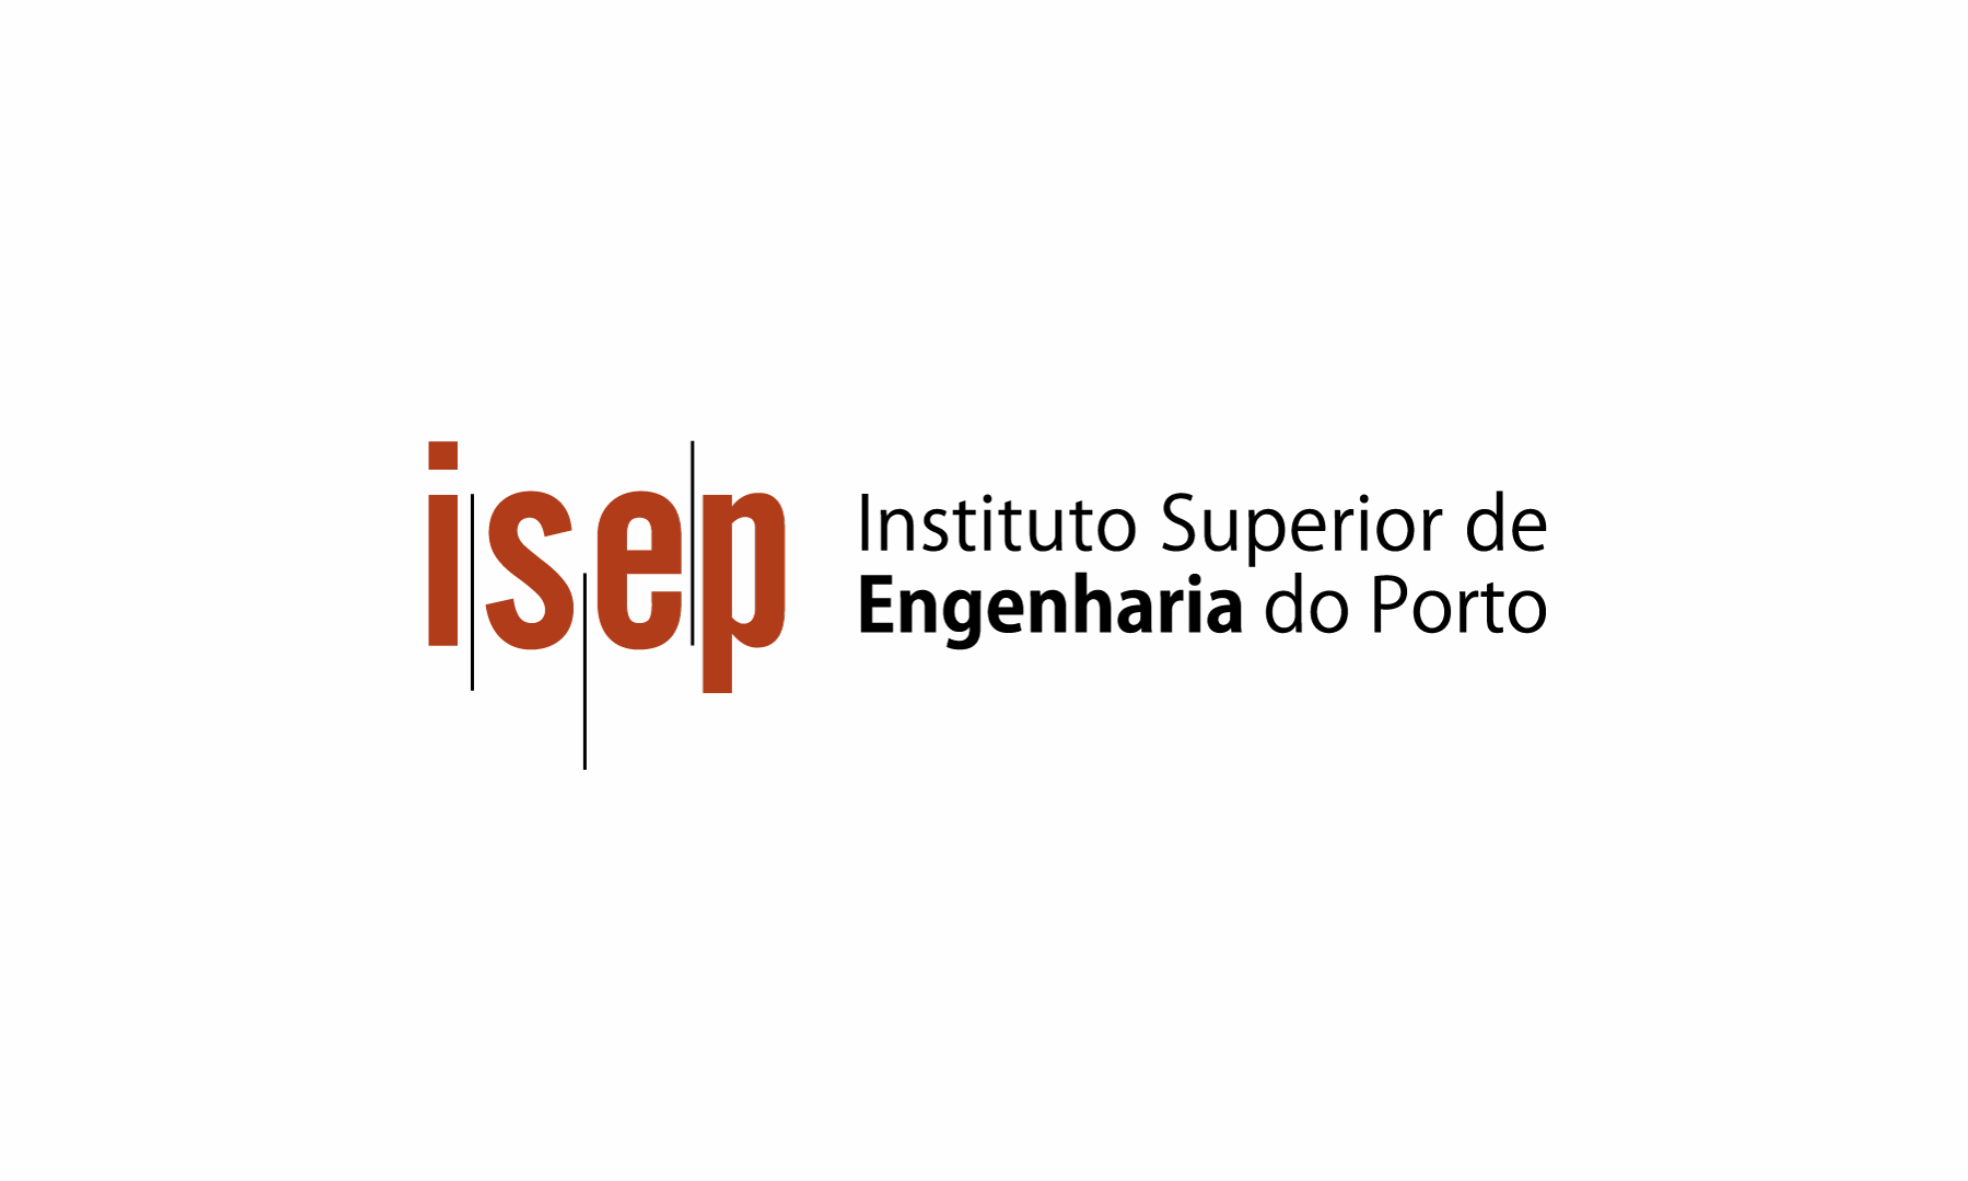 ISEP - Instituto Superior de Engenharia